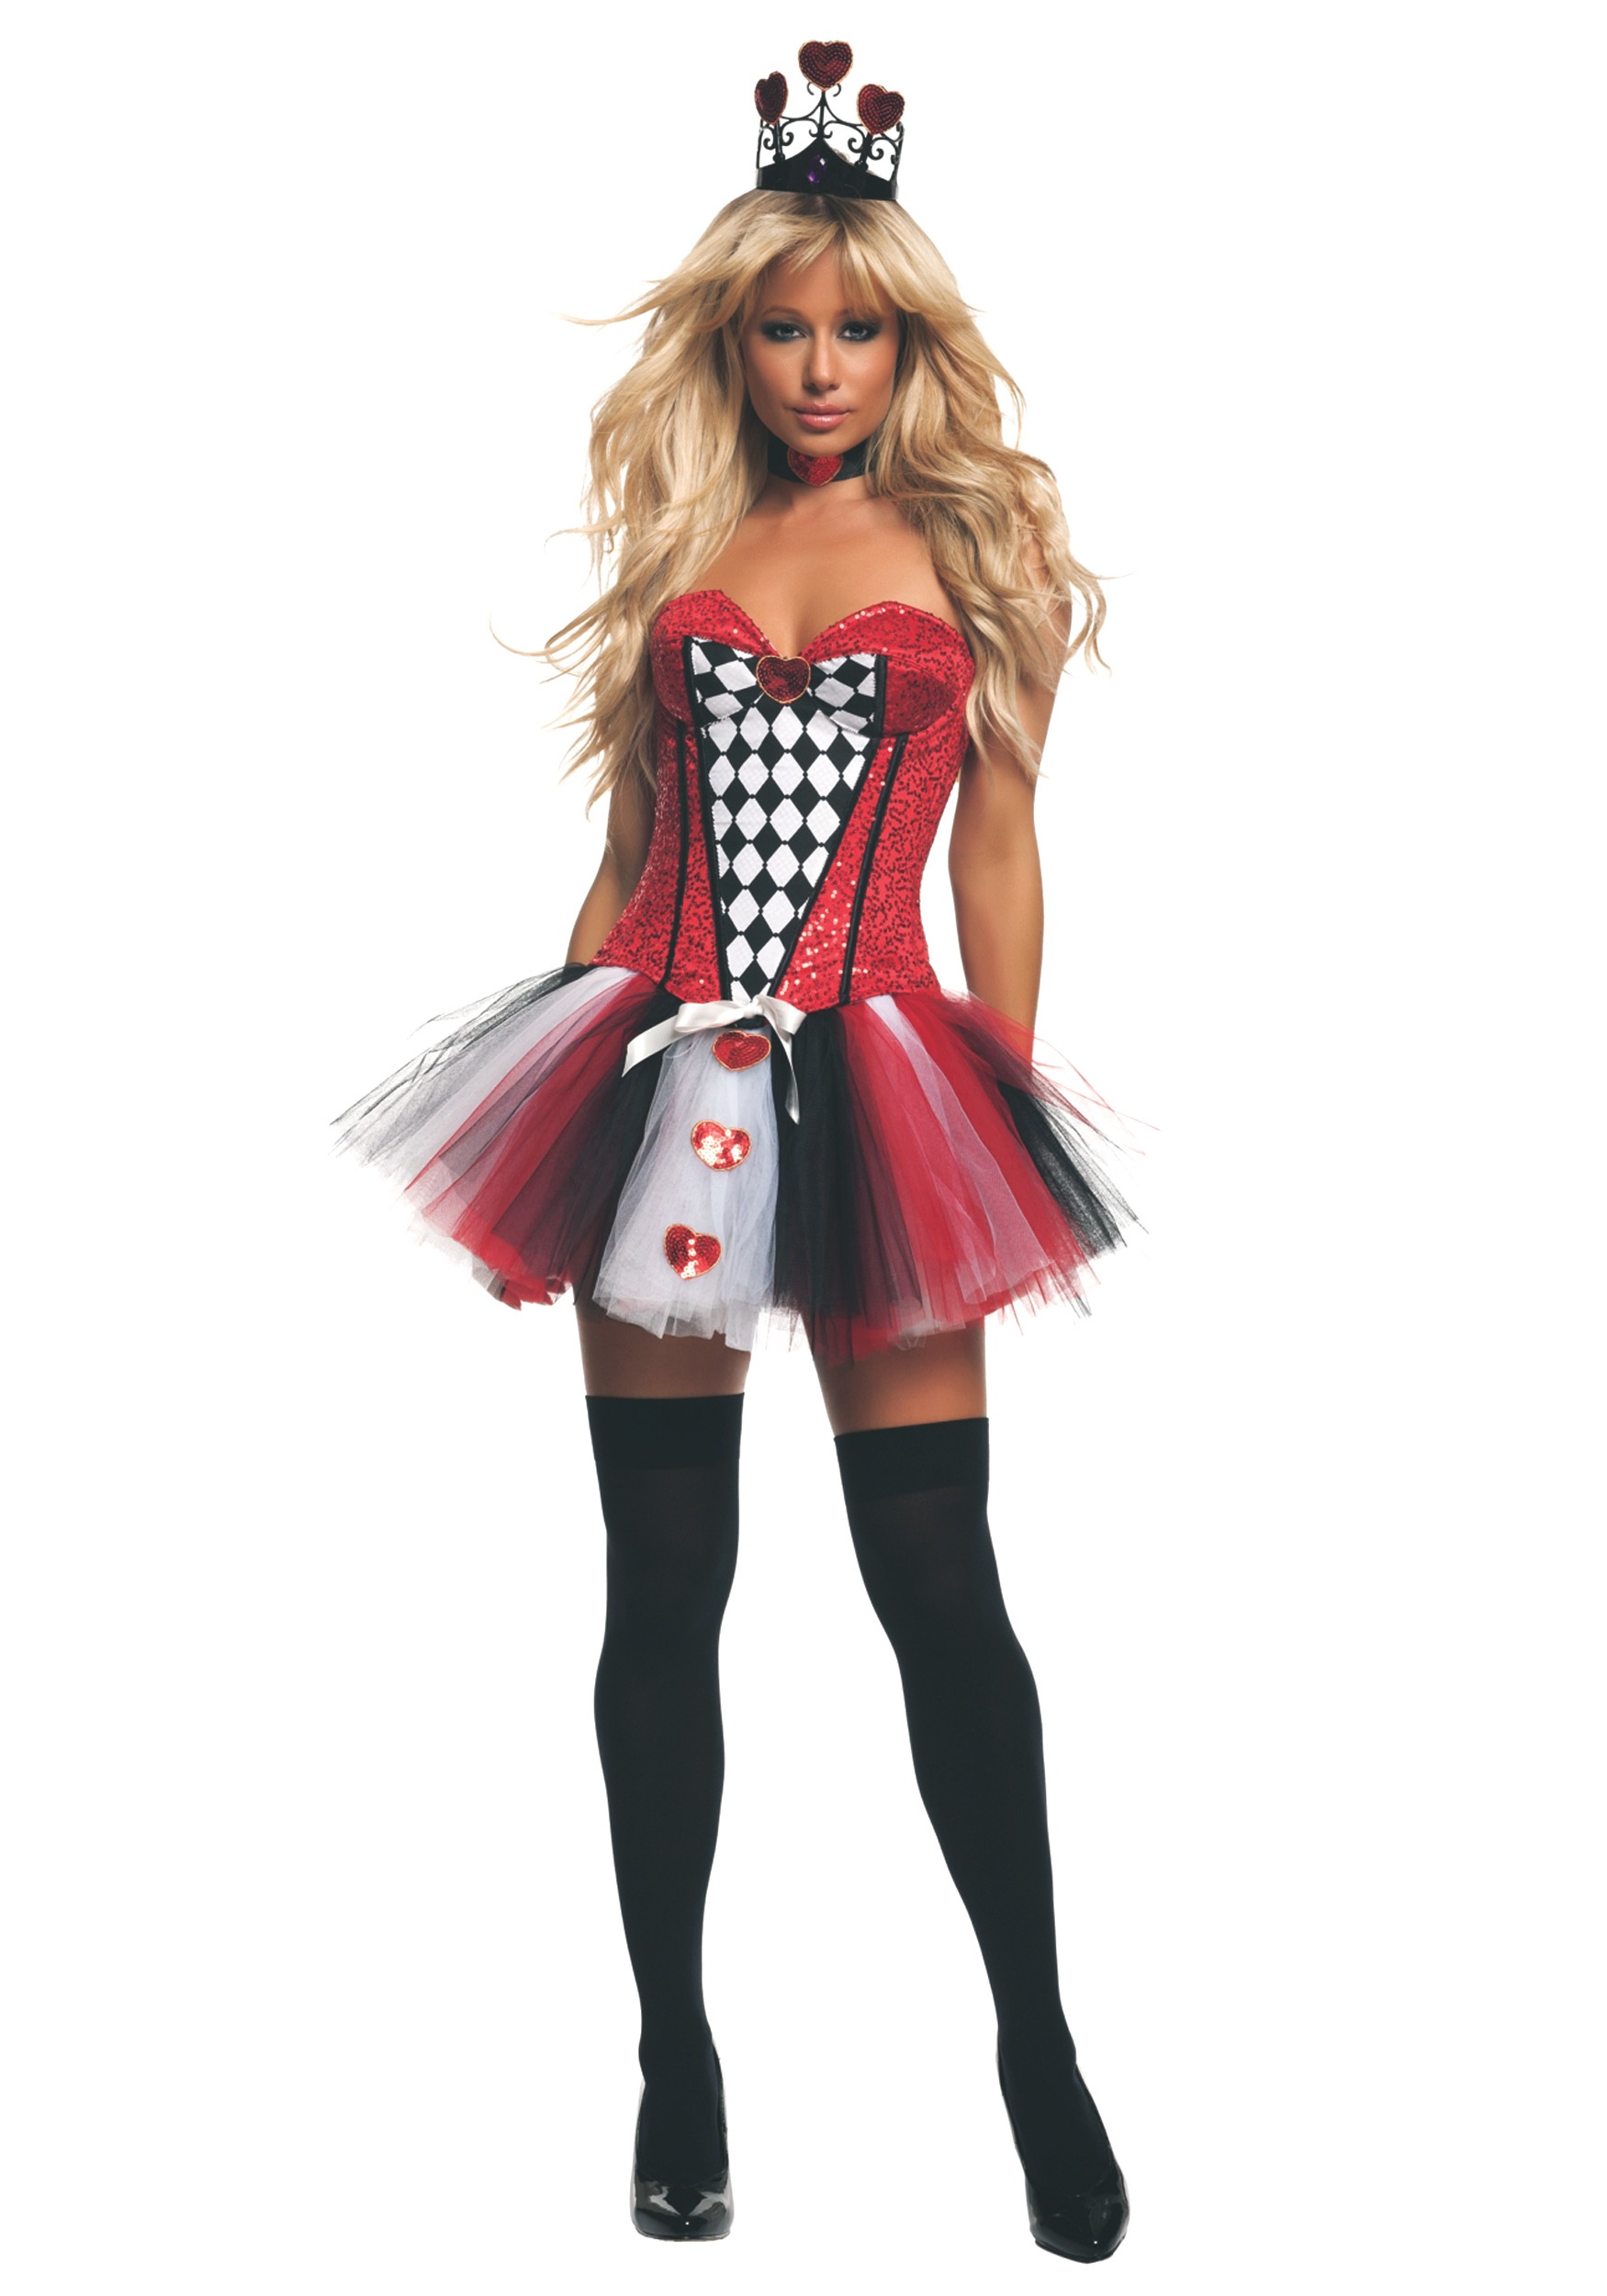 Womenu0027s Feisty Queen of Hearts Costume  sc 1 st  Halloween Costumes & Womenu0027s Feisty Queen of Hearts Costume - Halloween Costumes